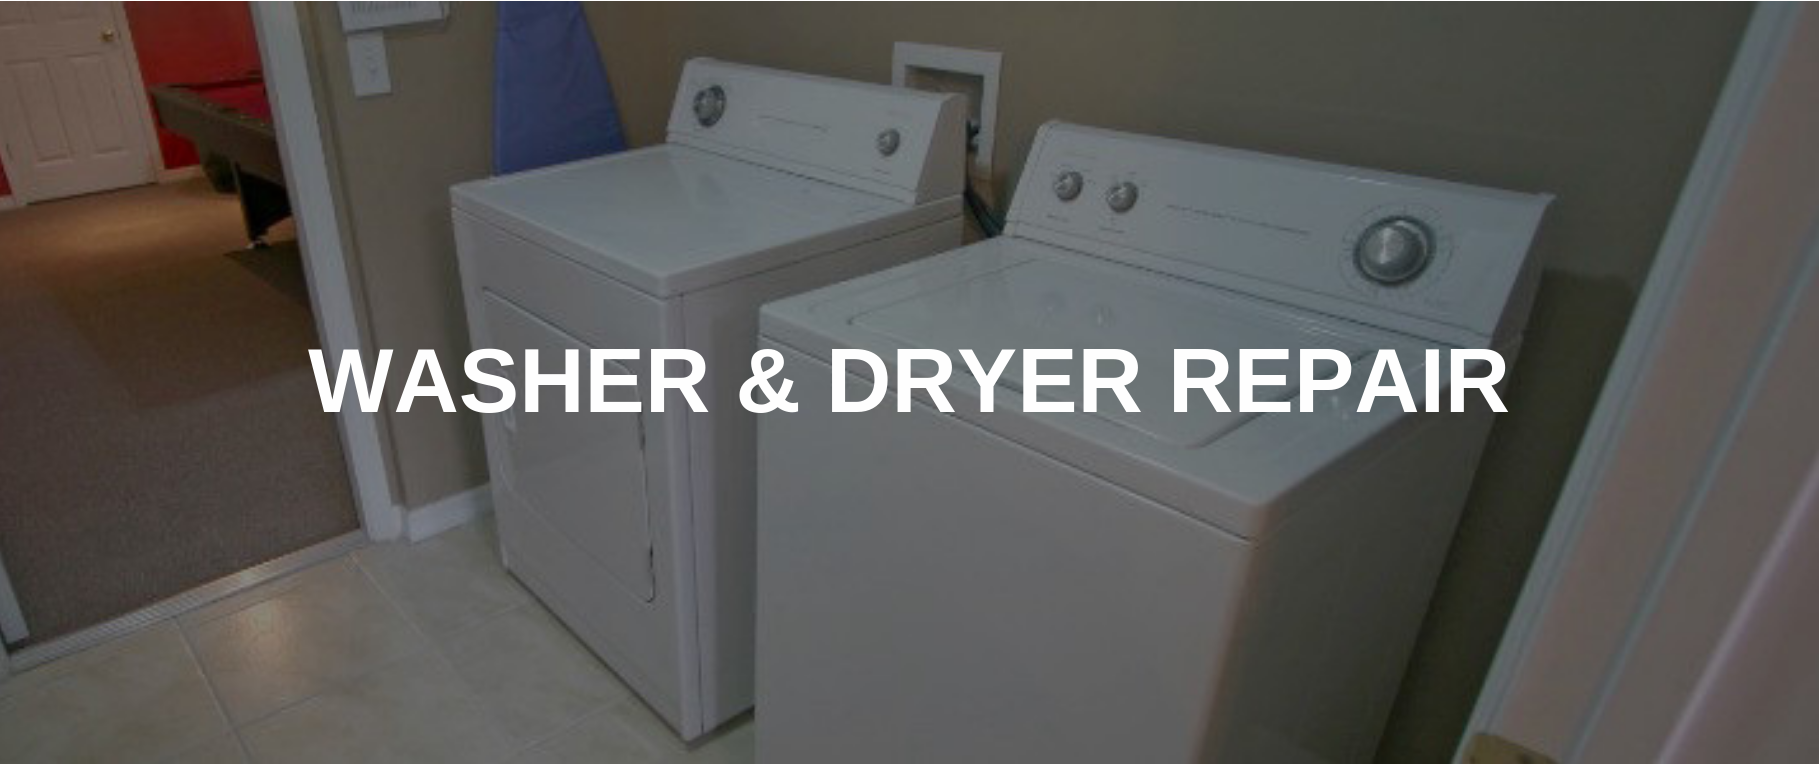 washing machine repair hartford